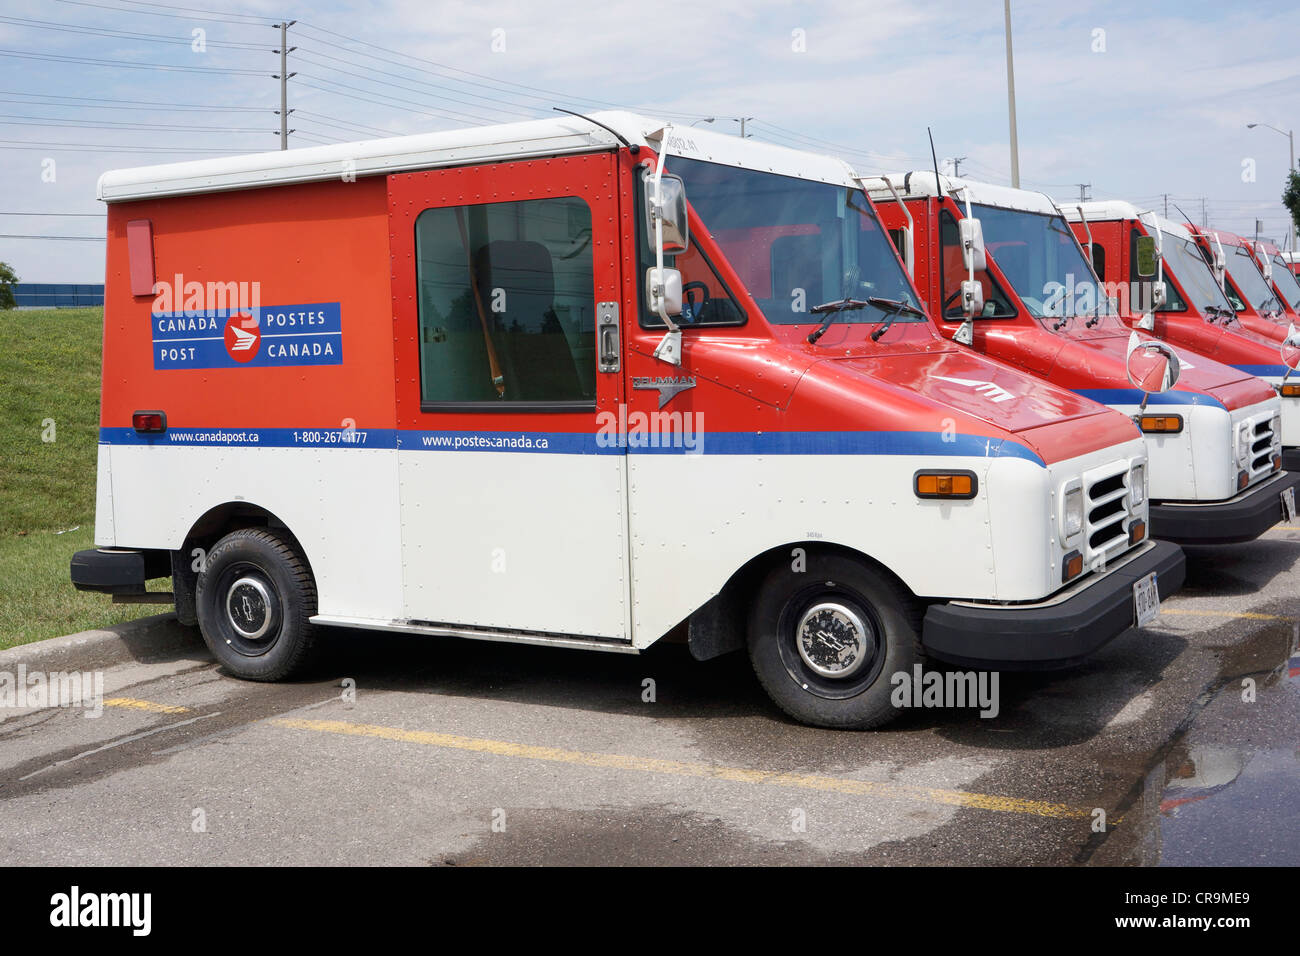 Canada Post Vans, parked outside in a row - Stock Image